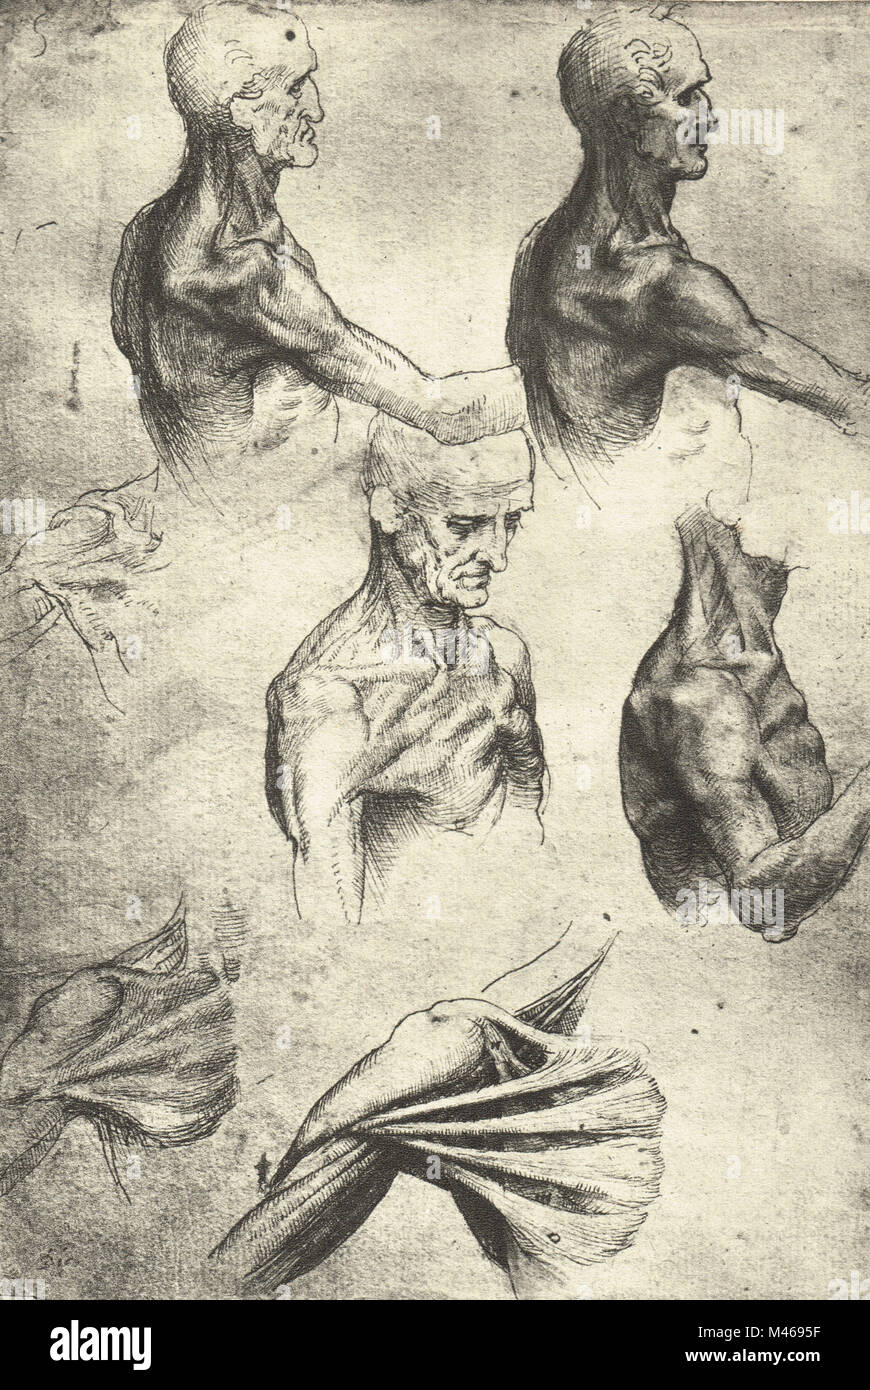 Anatomical drawing, studies of the head and shoulders of a man ...